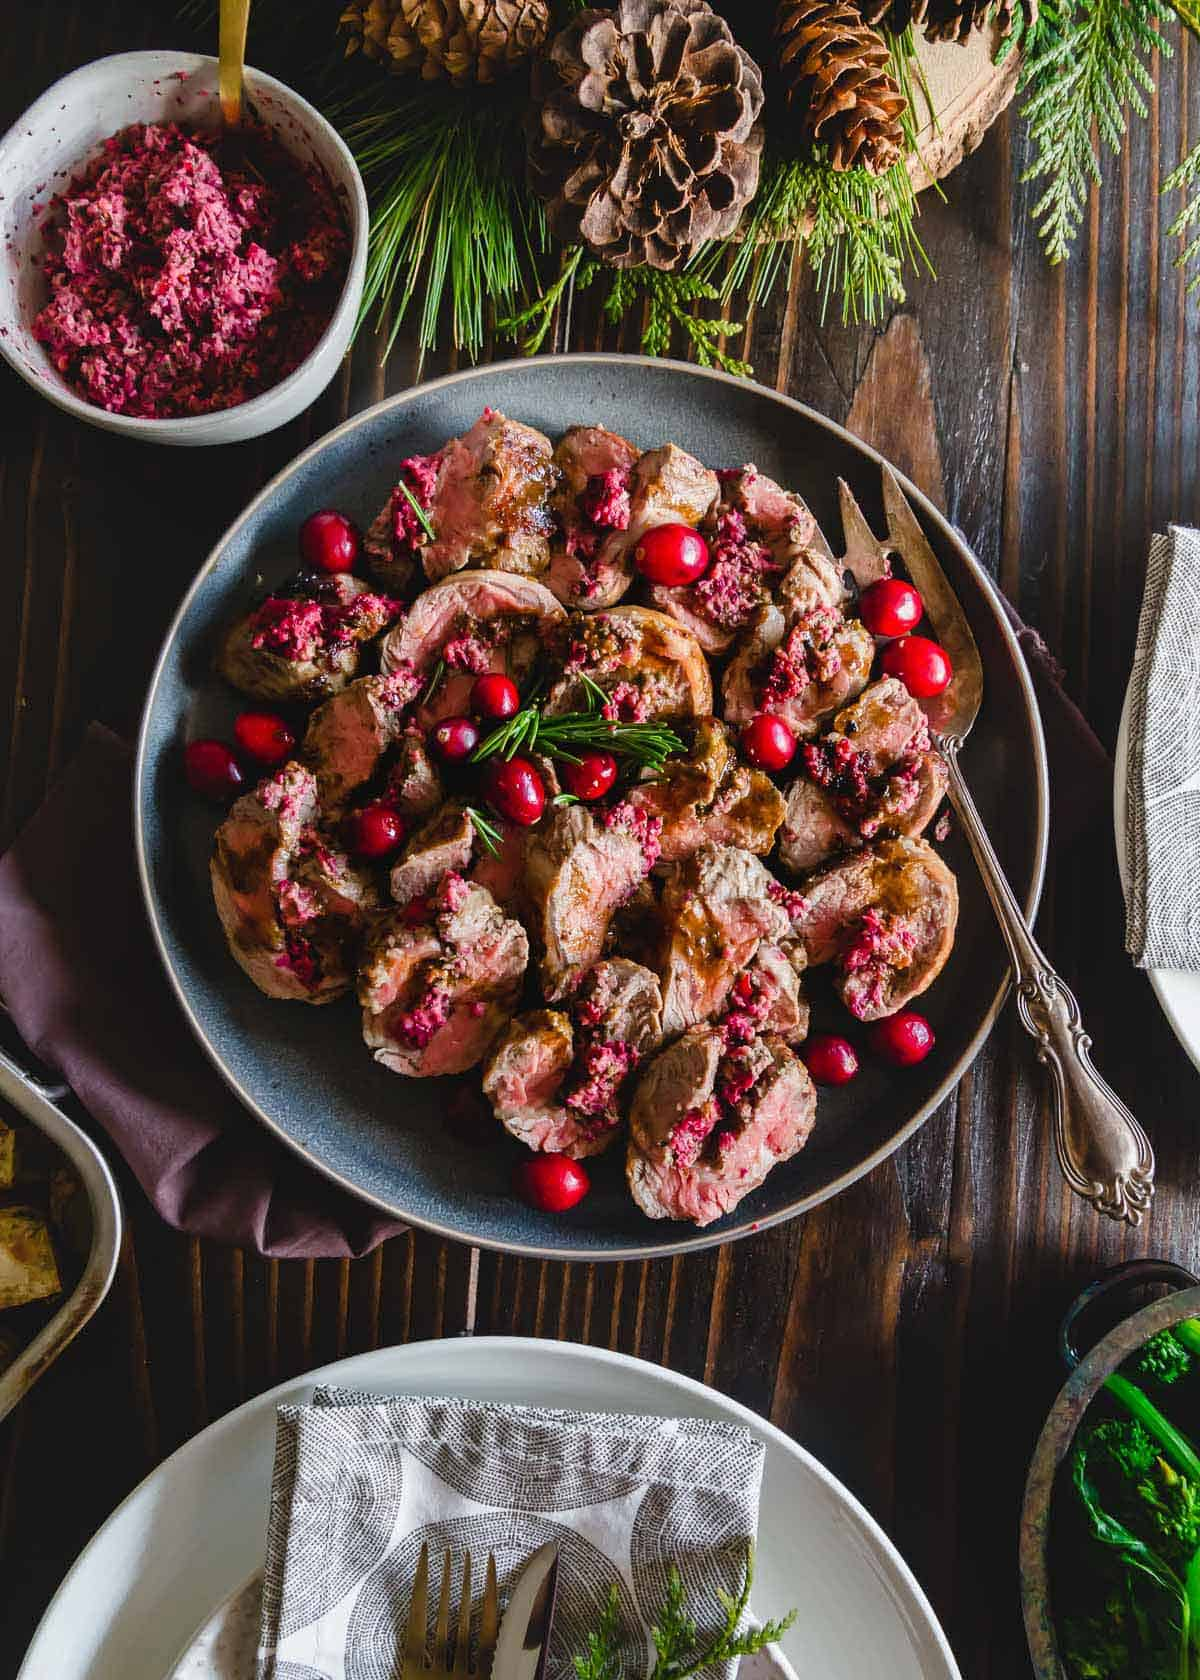 A simple cranberry pesto made with basil, mint, garlic and pine nuts makes this stuffed American lamb recipe a gorgeously festive and delicious winter dish perfect as a holiday dinner party centerpiece.